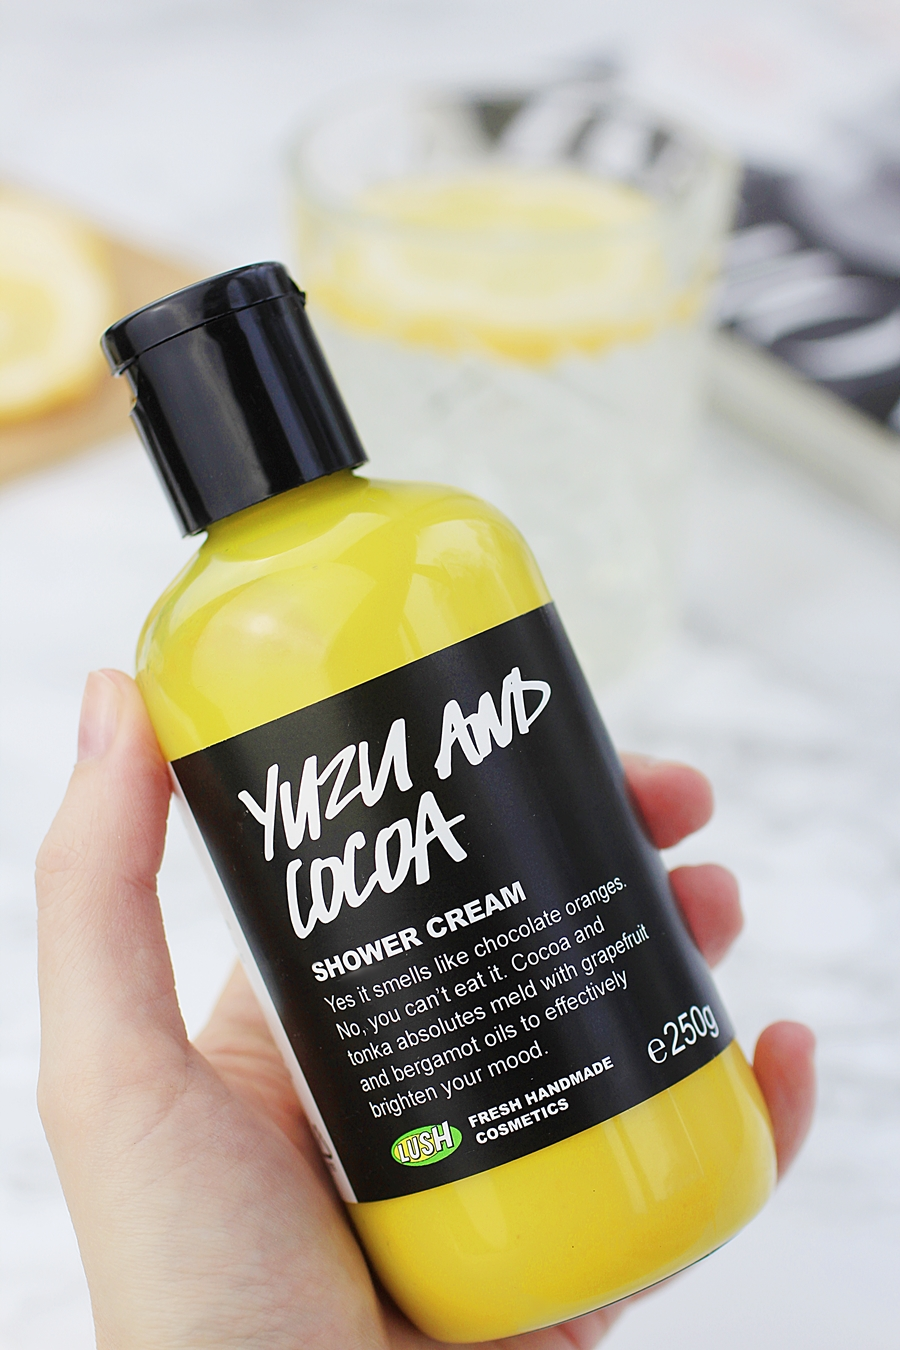 lush Yuzu  Cocoa review